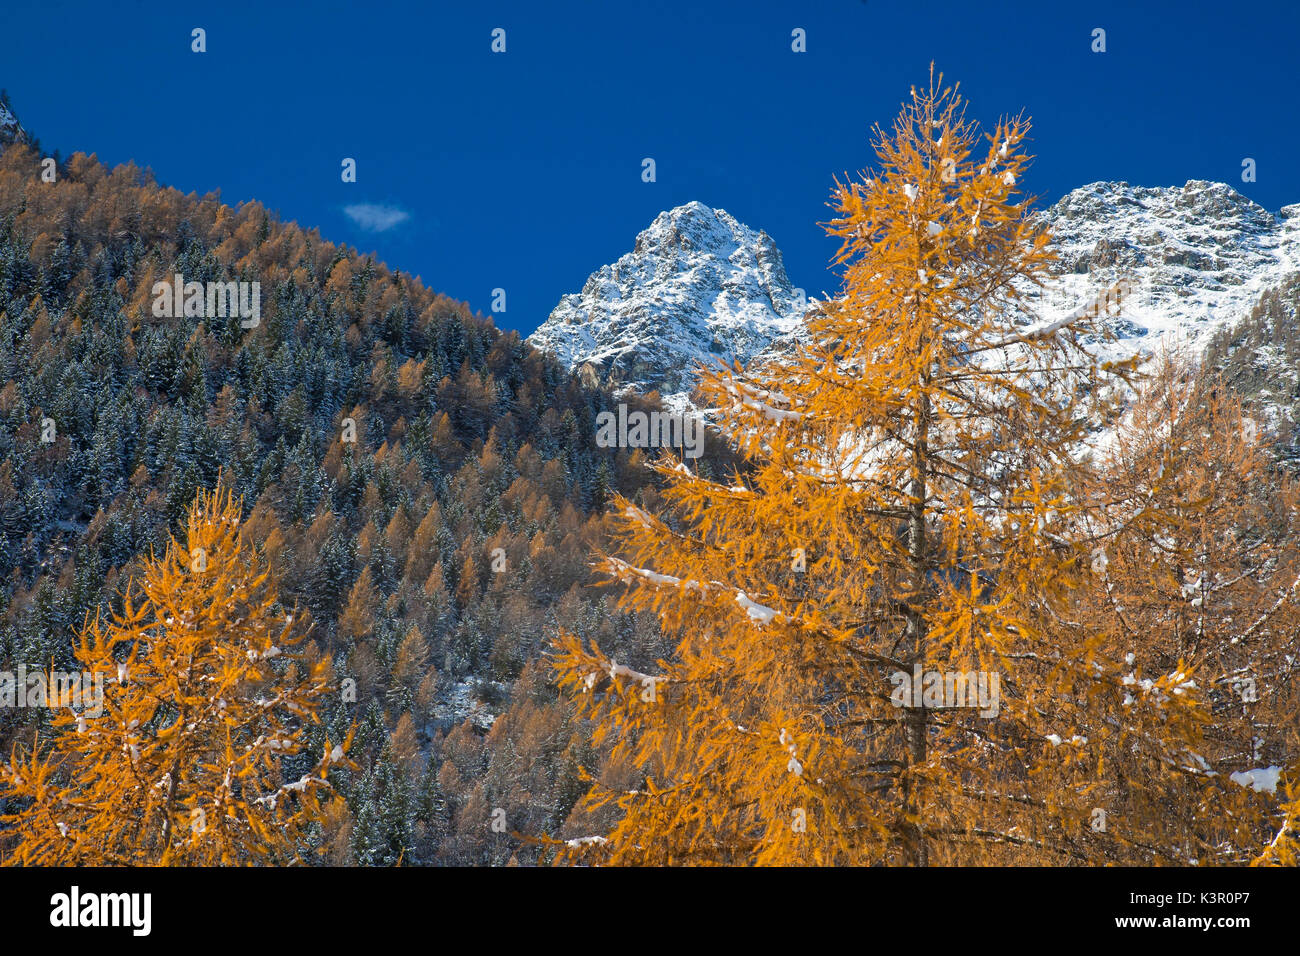 The yellow larches and the snow-capped peak of Punta Rosalba are tangible signs of the upcoming winter in Valmalenco, Valtellina, Lombardy Italy Europe - Stock Image